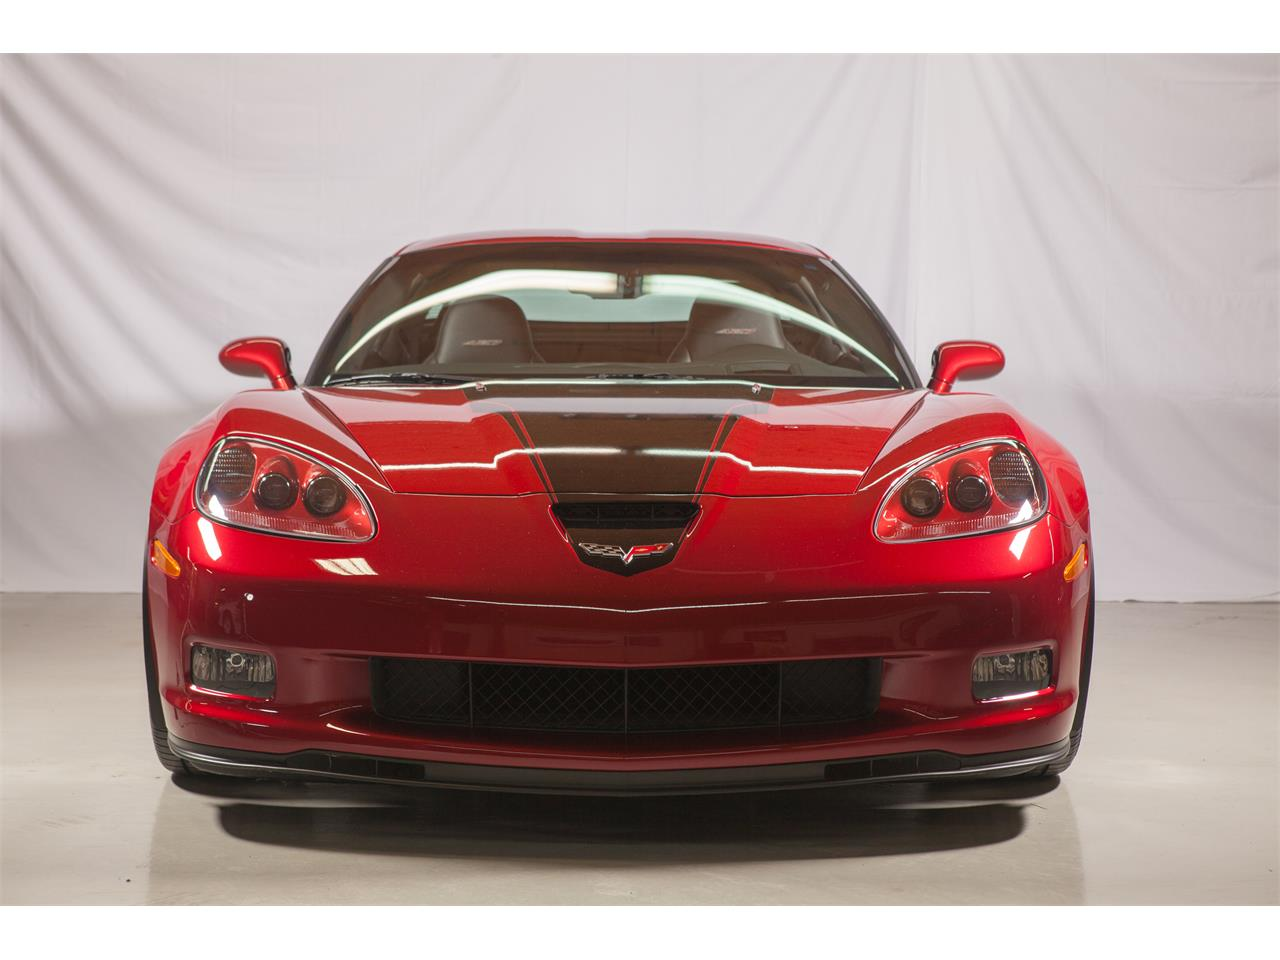 Large Picture of 2008 Chevrolet Corvette Z06 - $41,900.00 Offered by Nostalgic Motoring Ltd. - QEBU